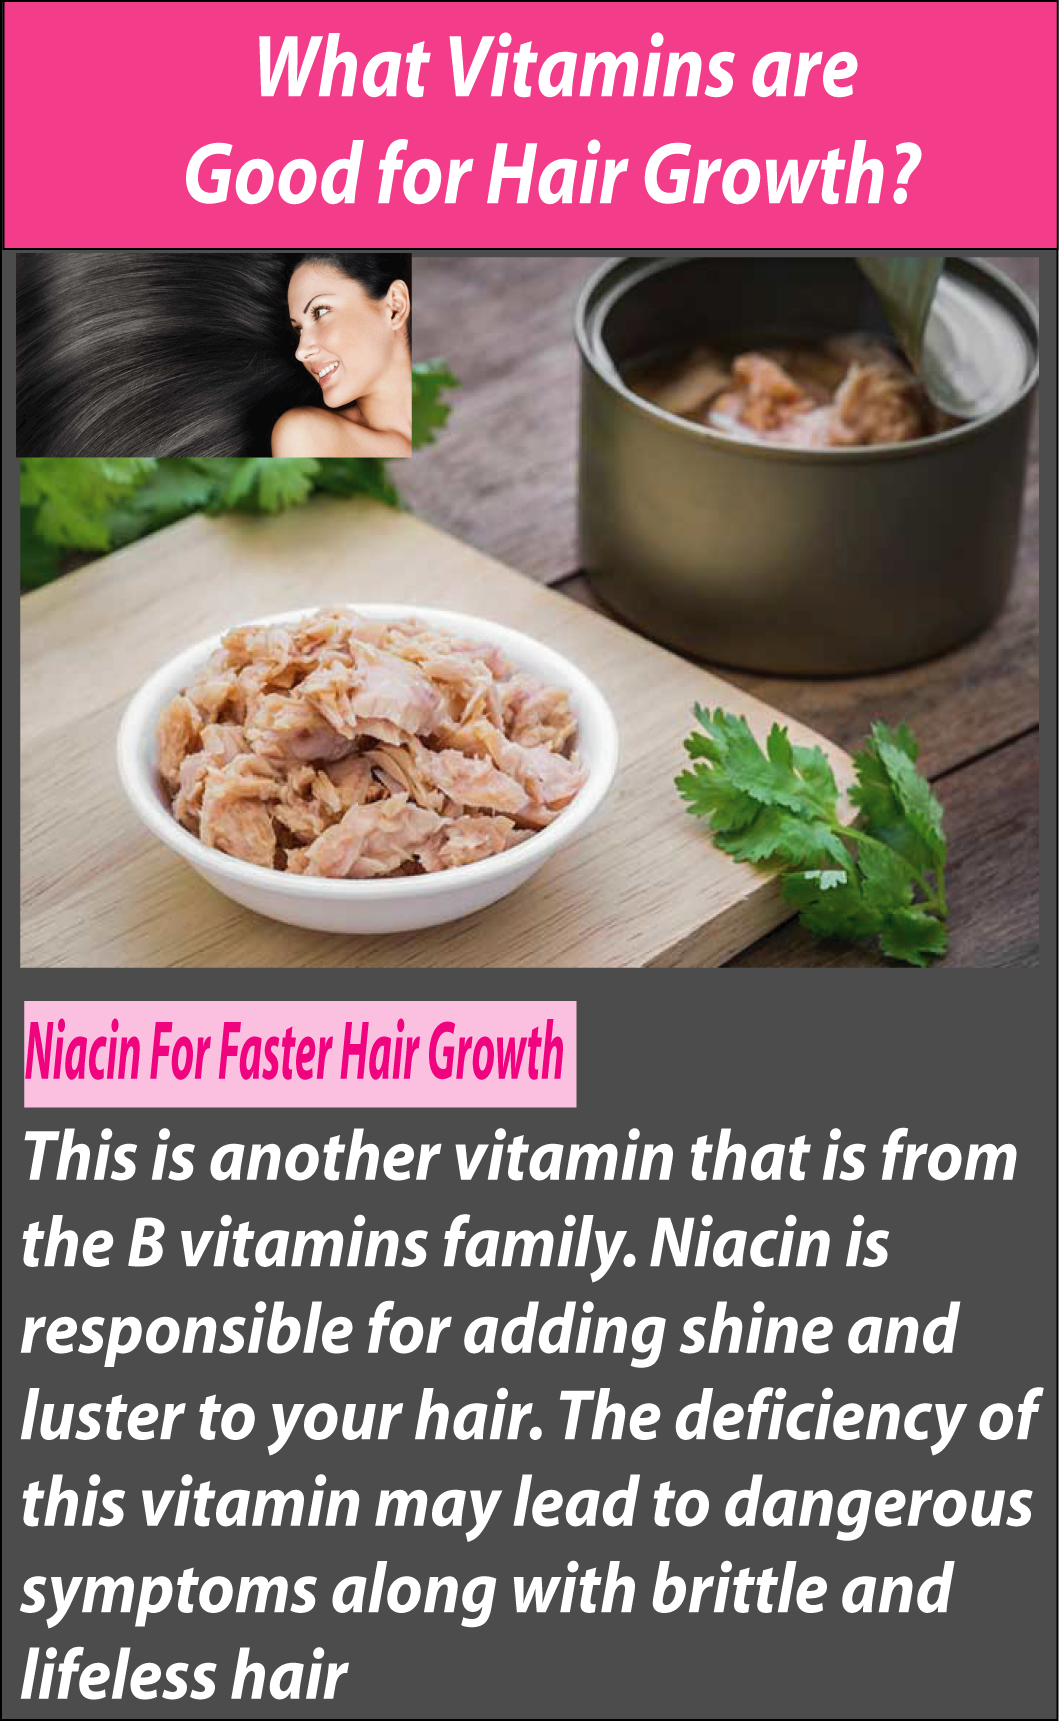 What is good for hair